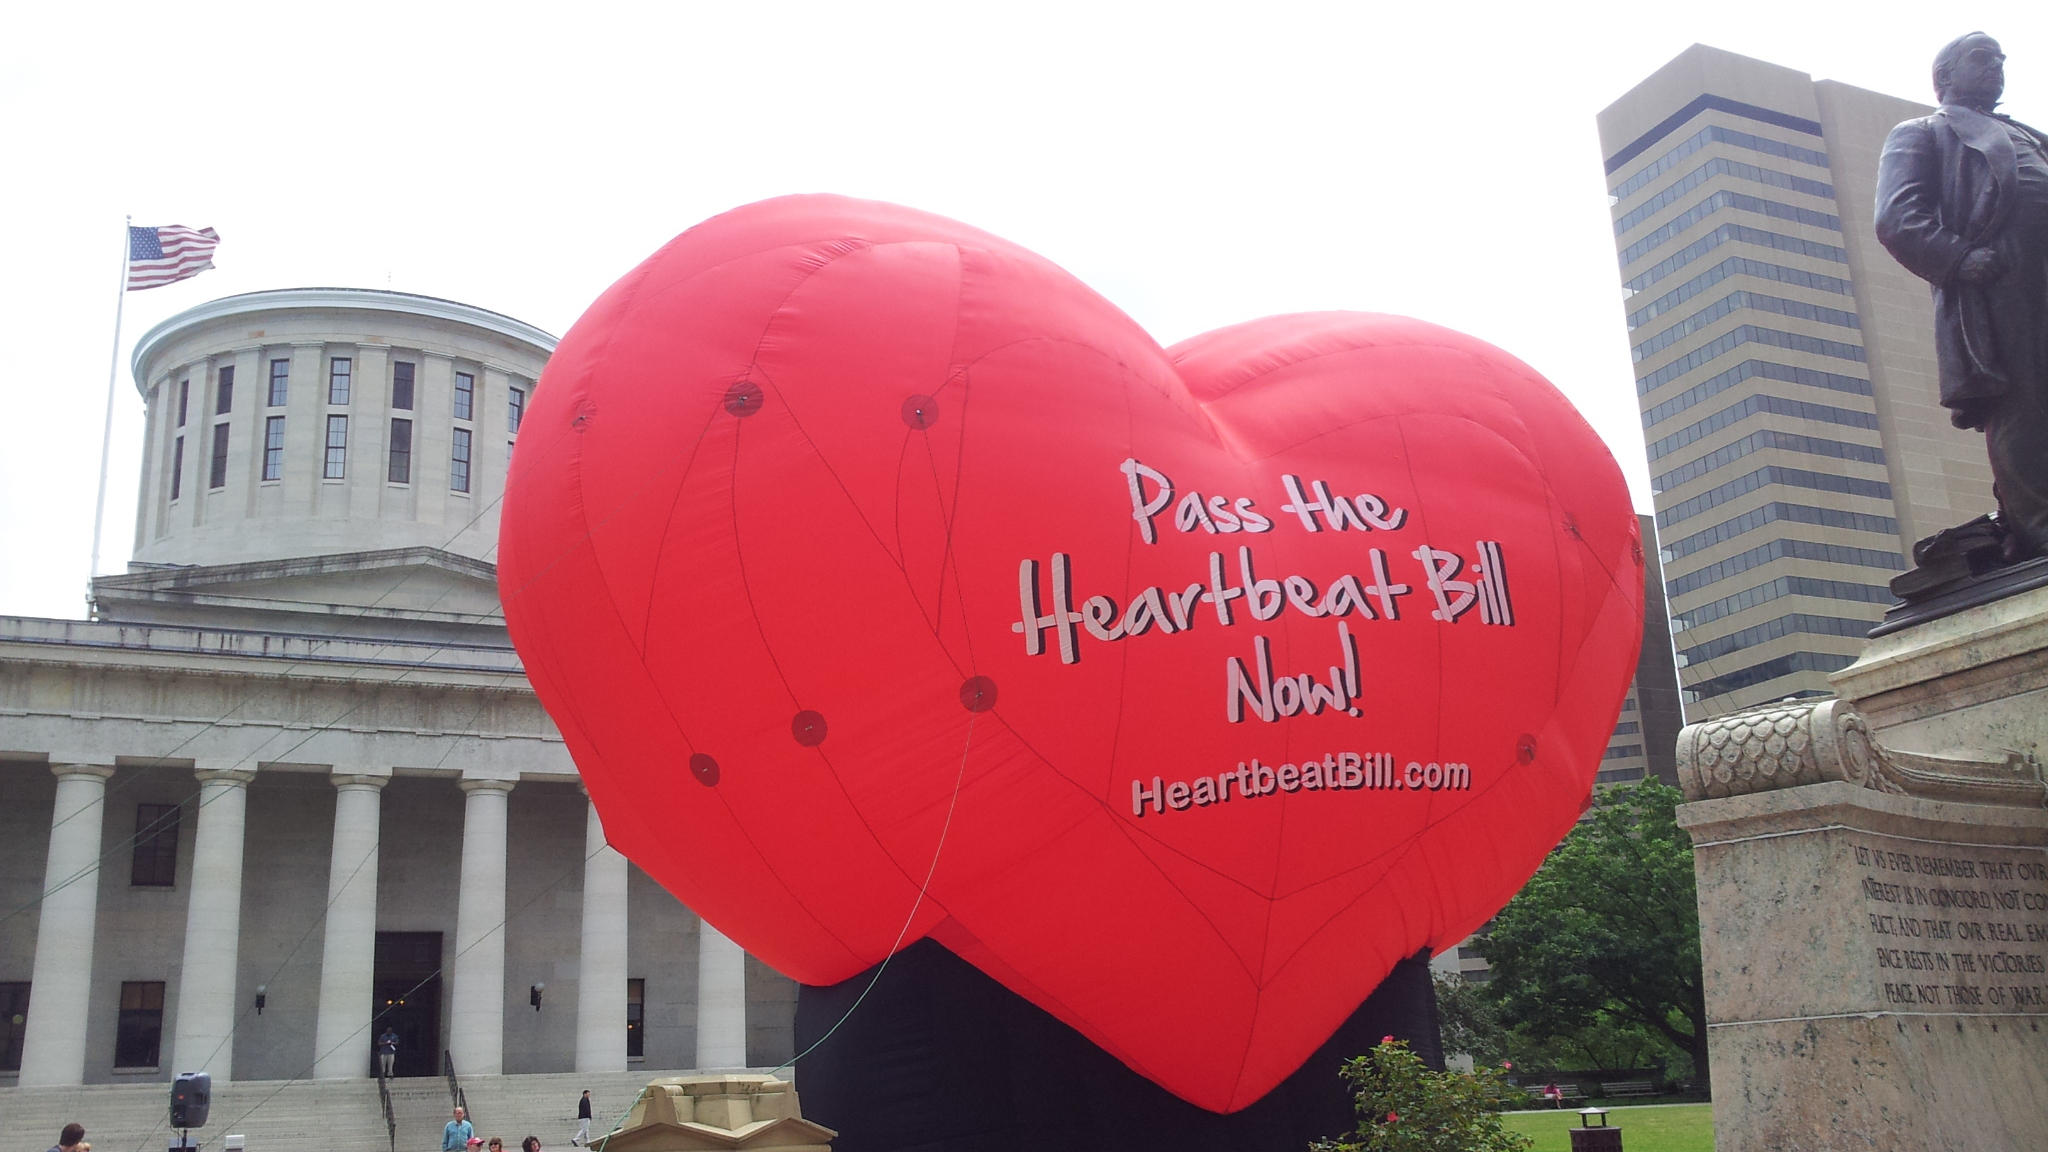 Encouraged by Trump's Election, Ohio Lawmakers Pass 'Heartbeat' Abortion Bill